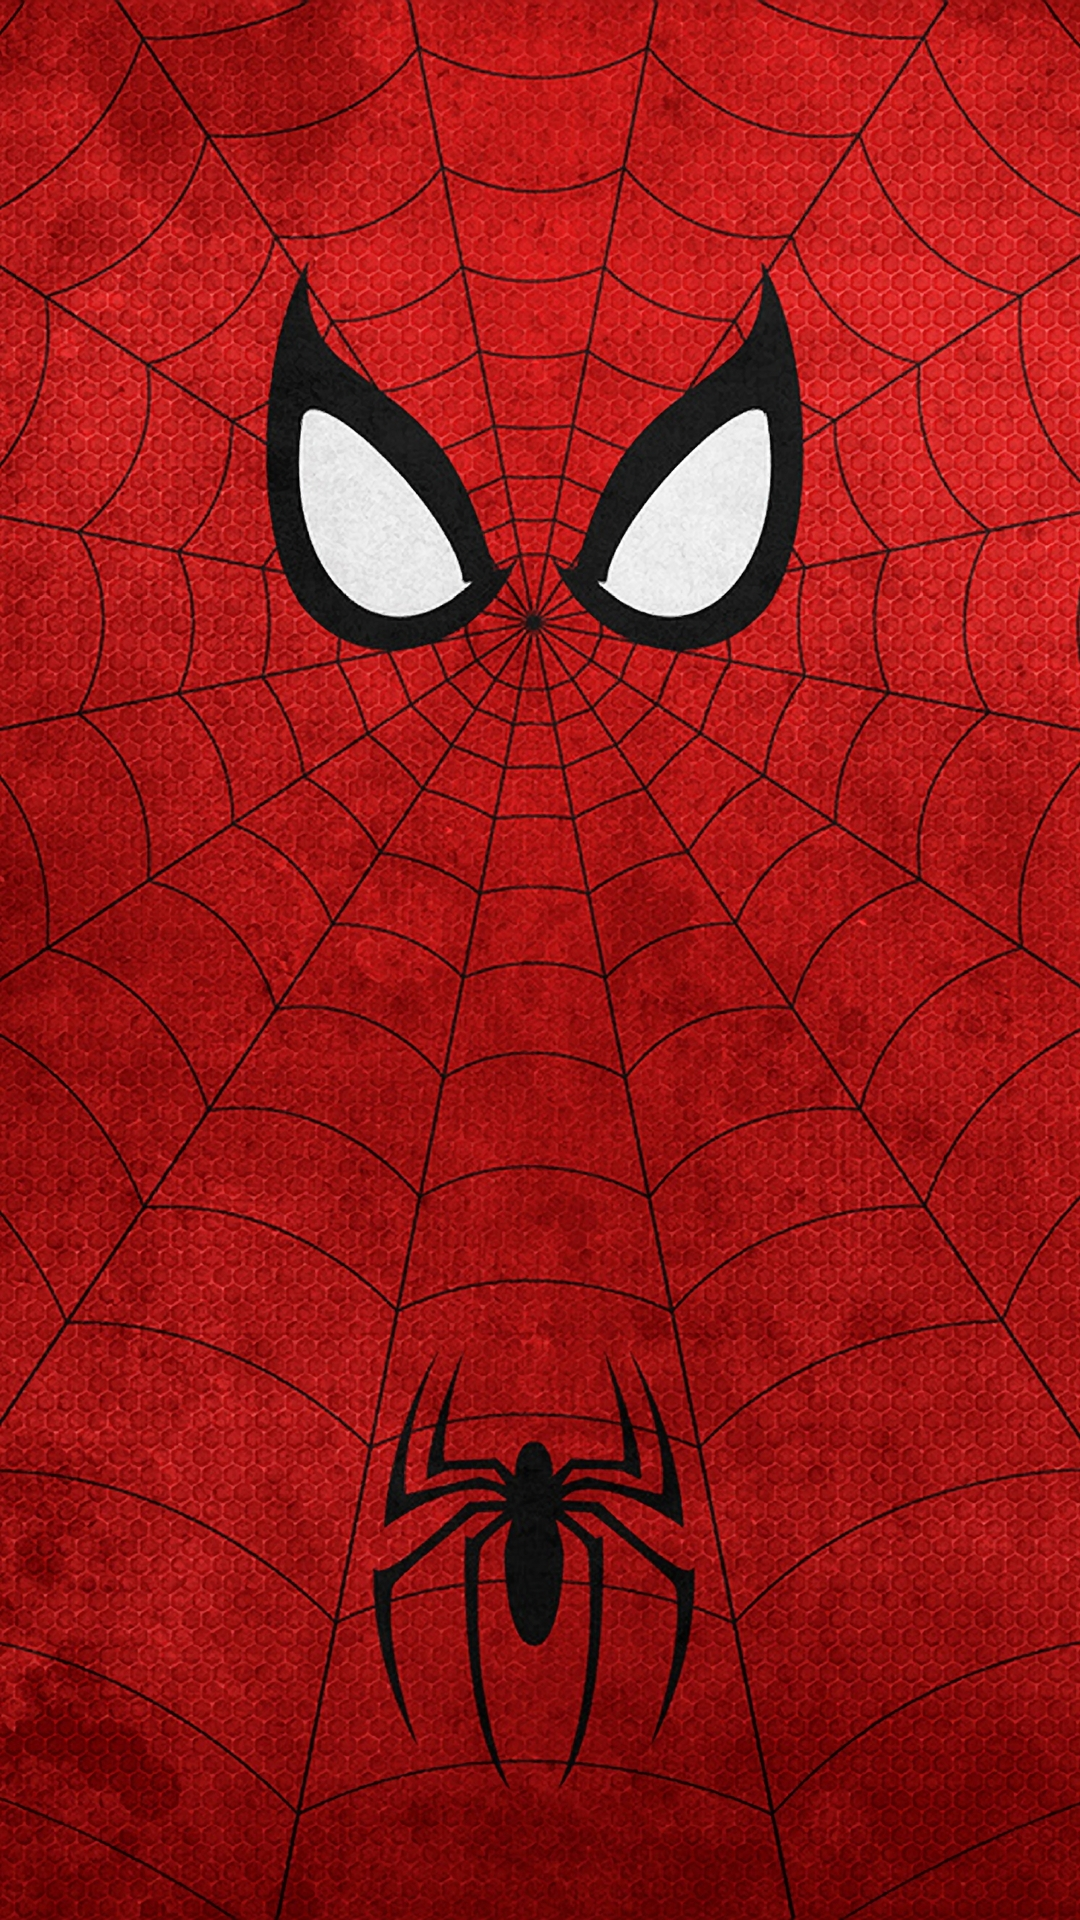 Spiderman Logo Wallpaper Mobile